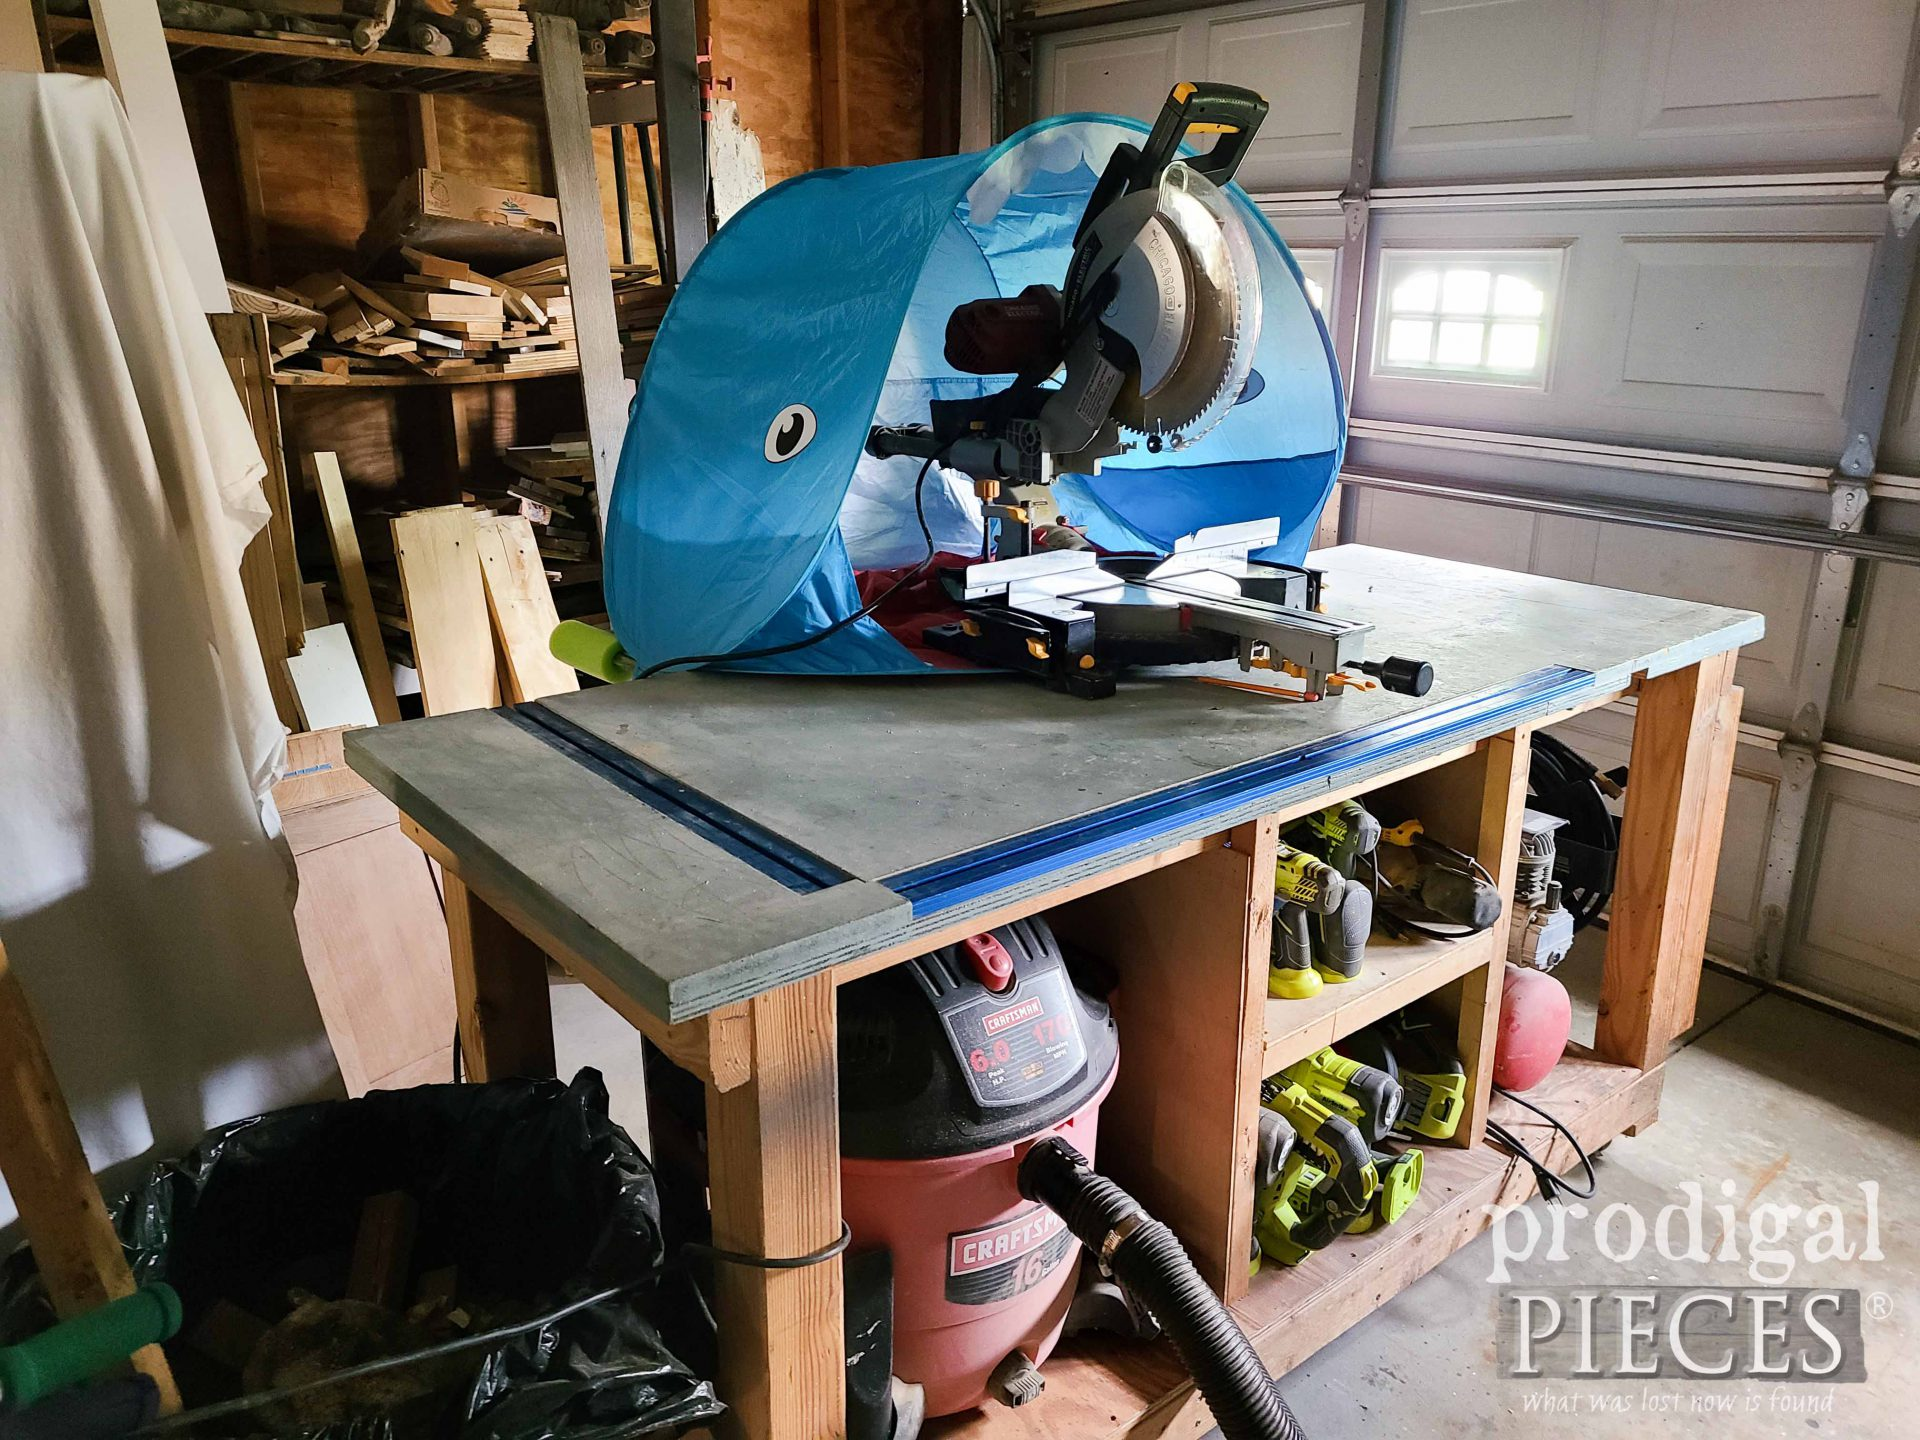 Baby Tent Used for DIY Miter Saw Hood Dust Collector by Larissa of Prodigal Pieces   prodigalpieces.com #prodigalpieces #woodworking #tools #diy #workshop